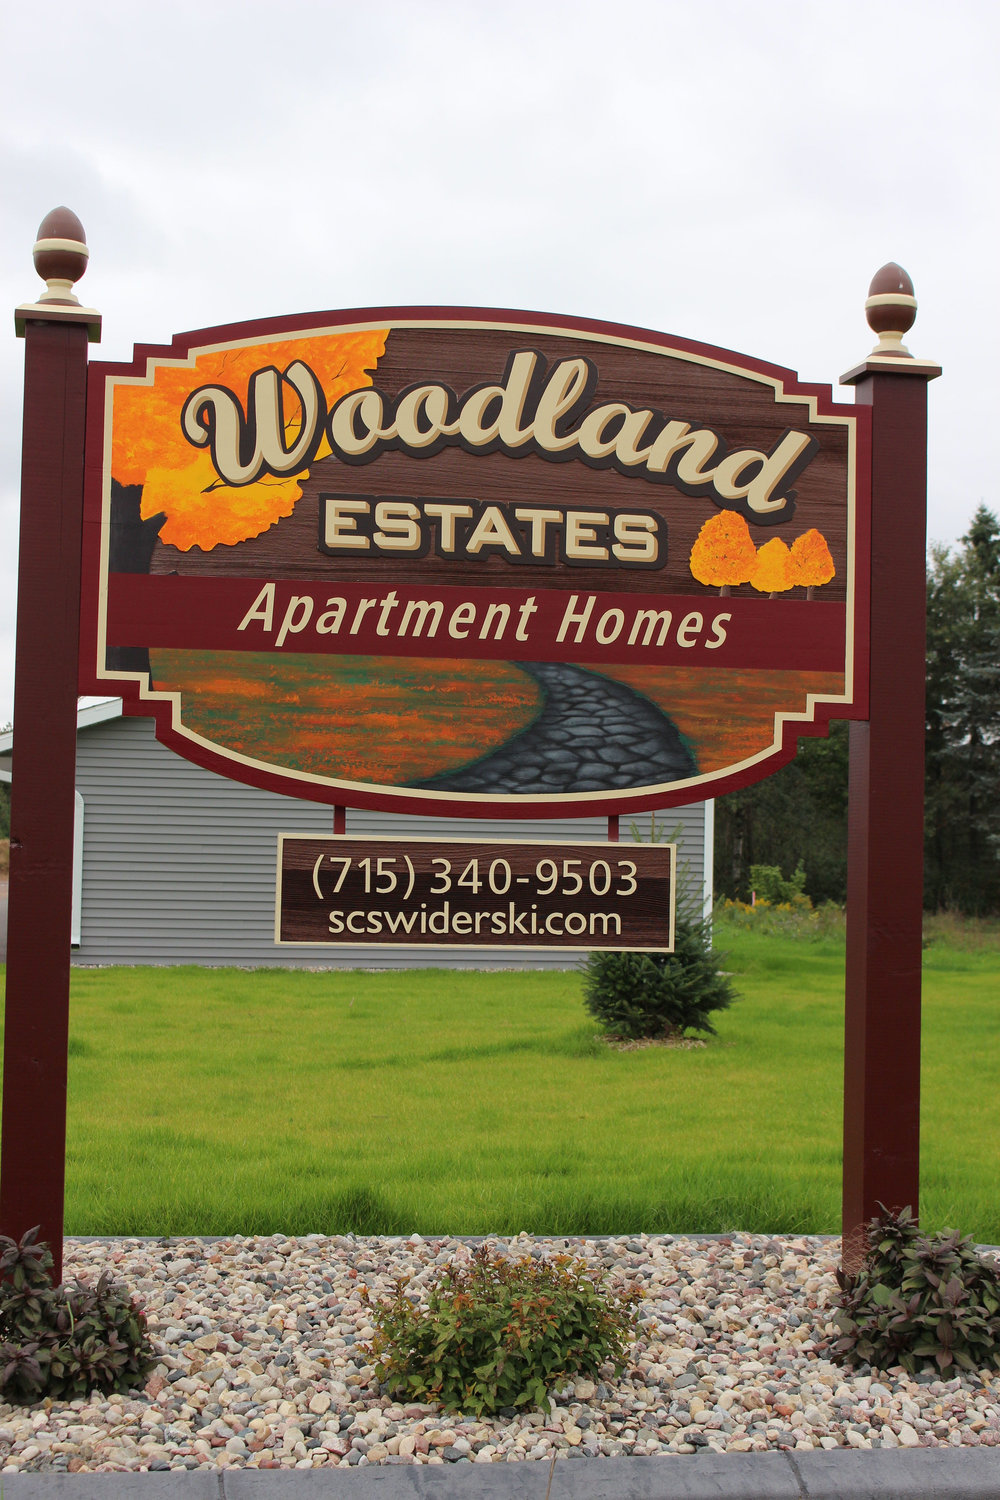 Woodland Estates Sign.jpg